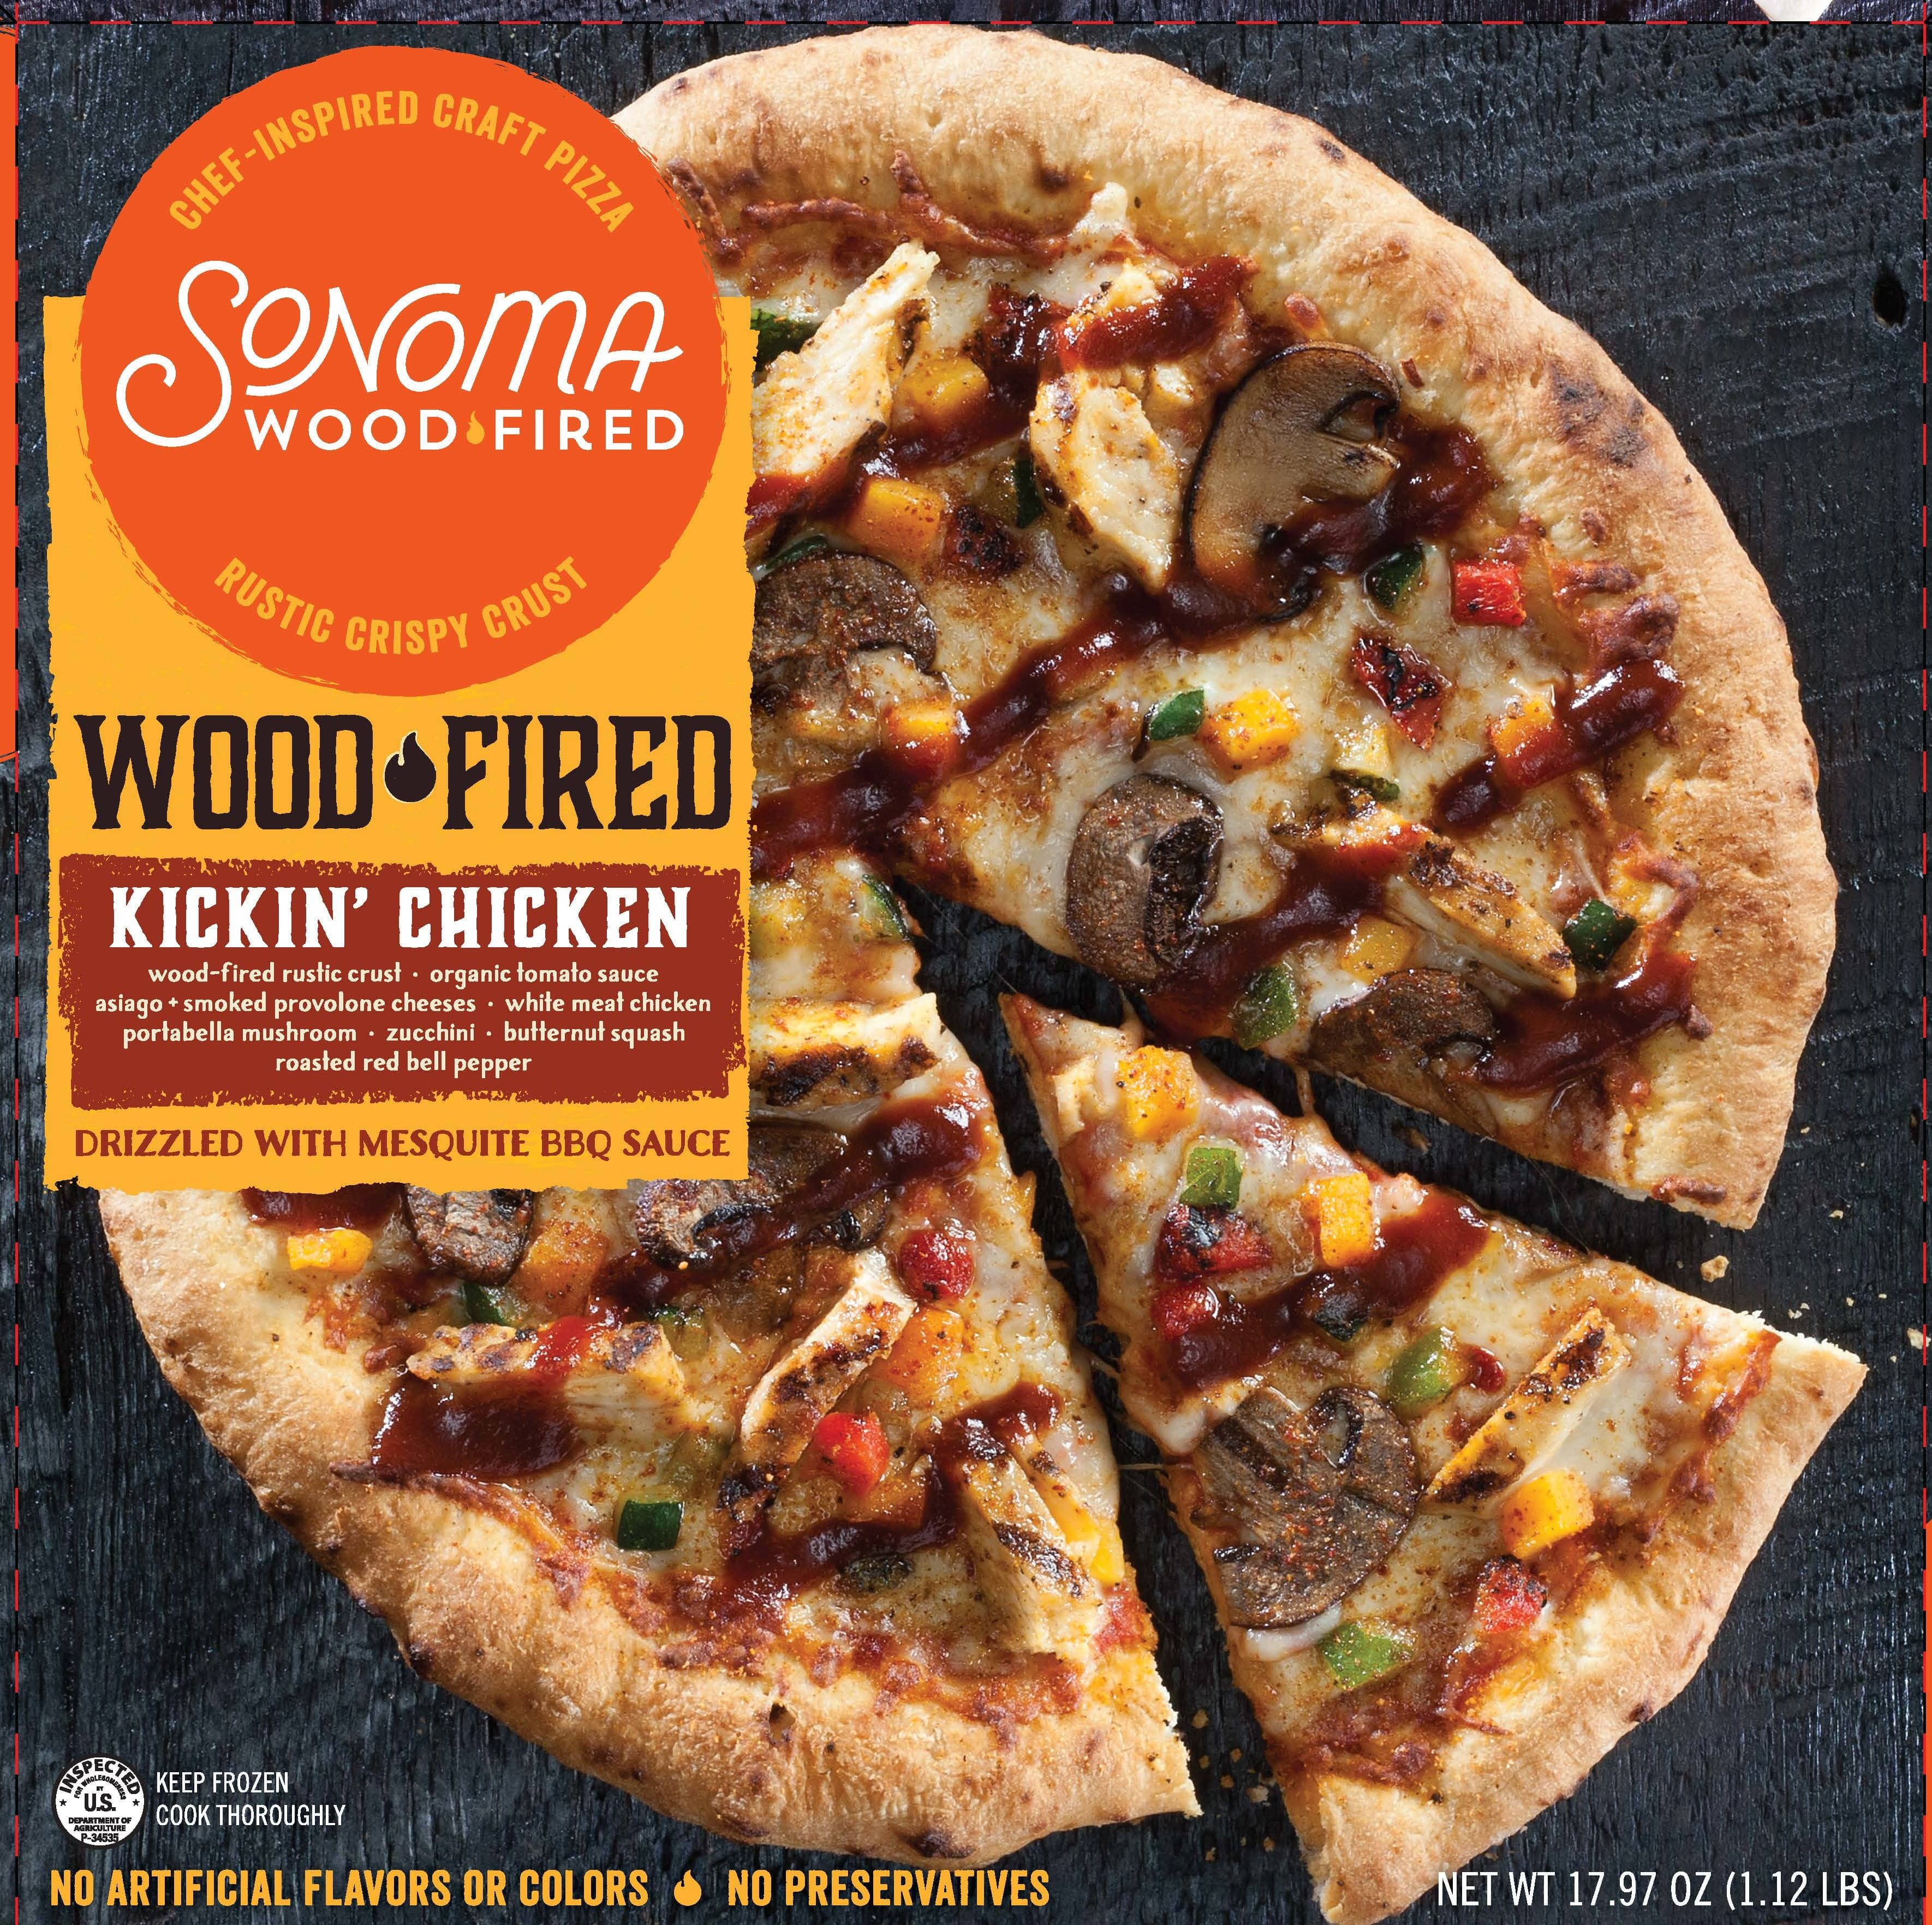 Sonoma Woodfired Launches Pizza Line